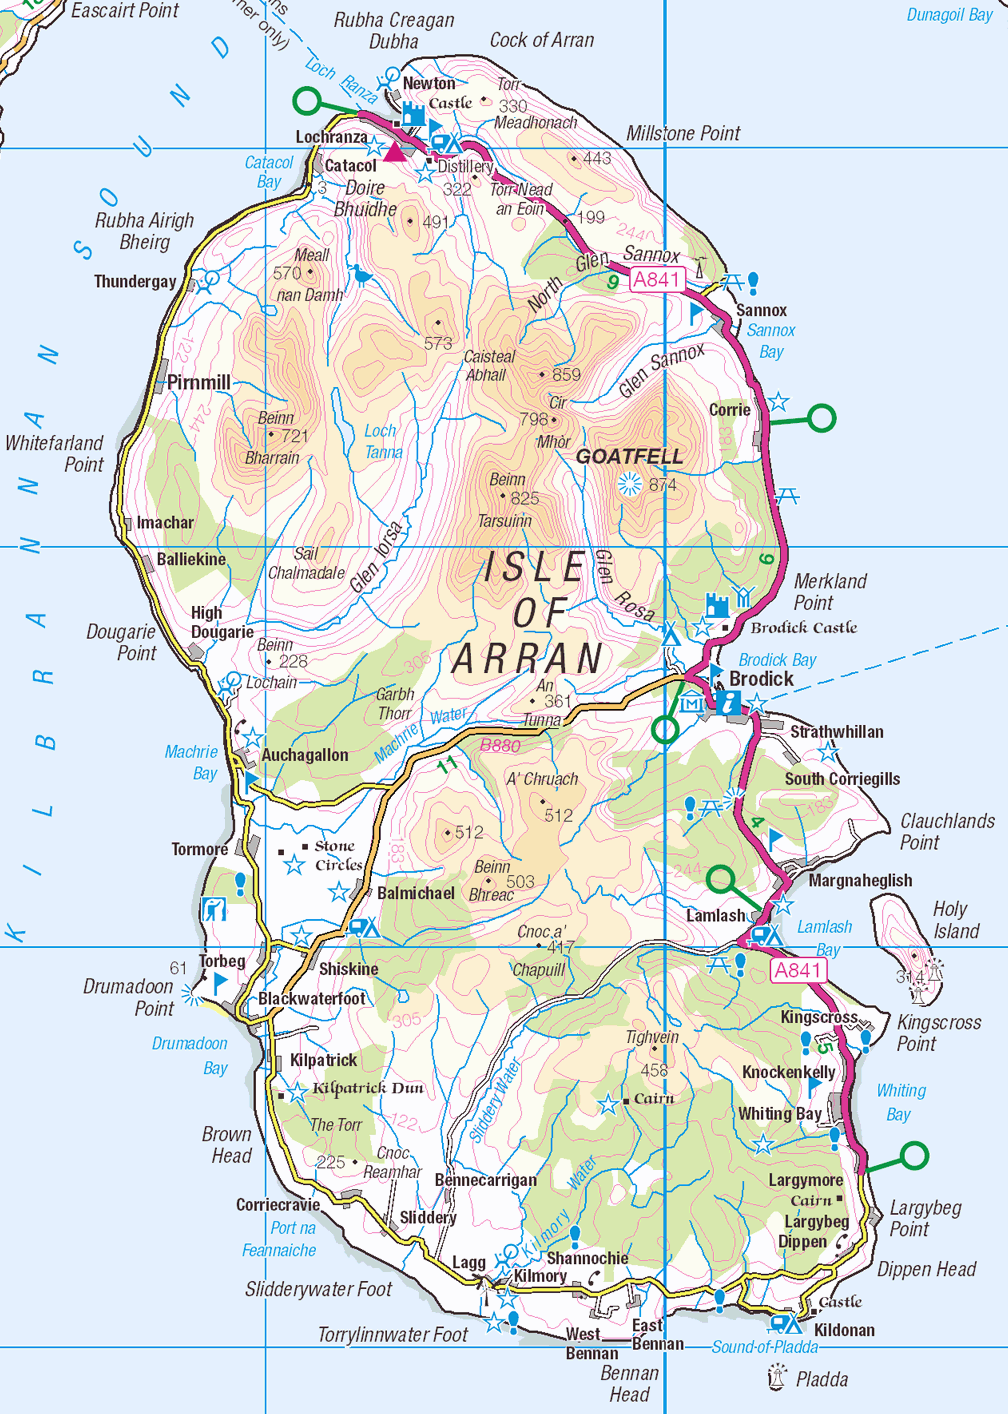 Carte de l'Isle d'Arran en Ecosse - Contains Ordnance Survey data © Crown copyright and database right